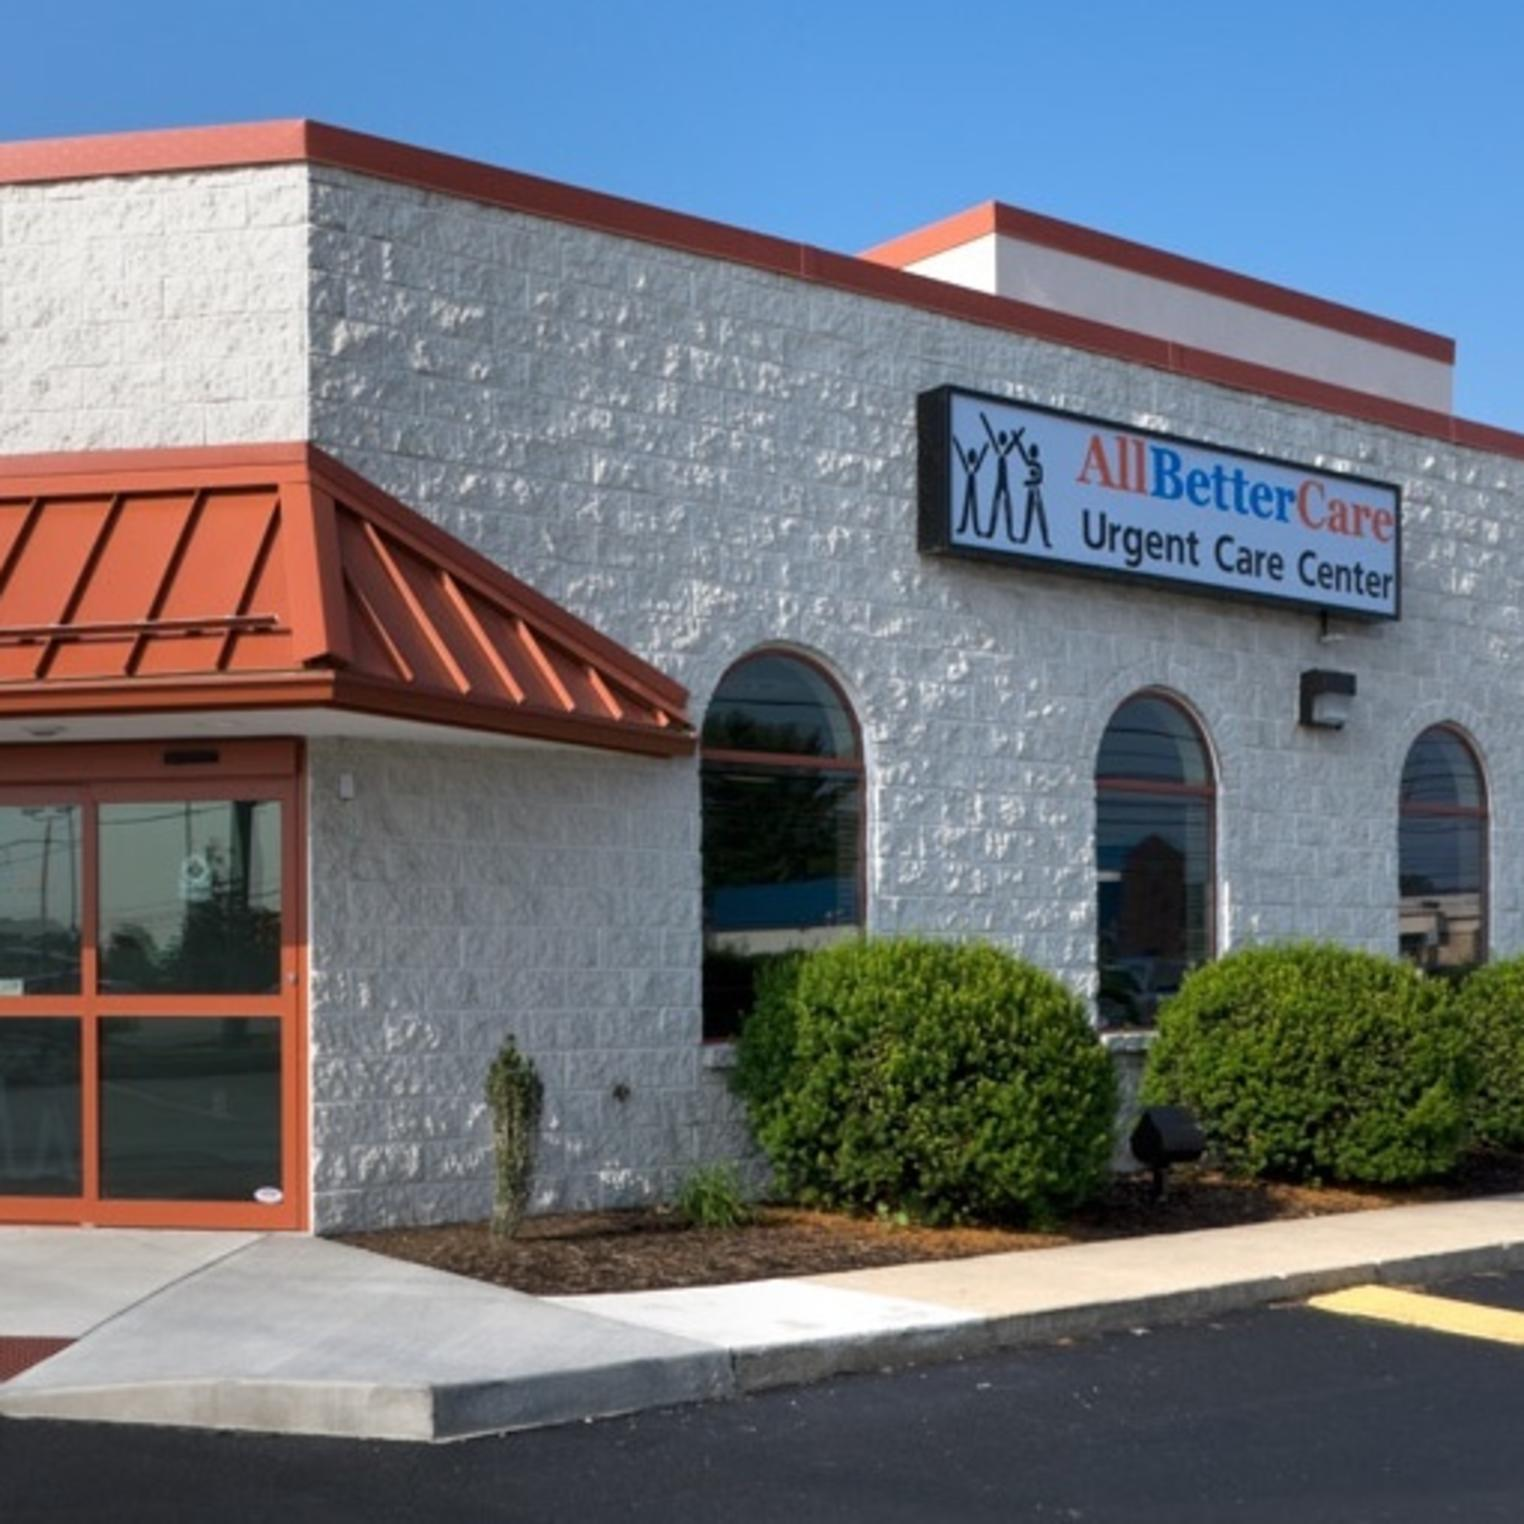 AllBetterCare Urgest Care Center Mechanicsburg